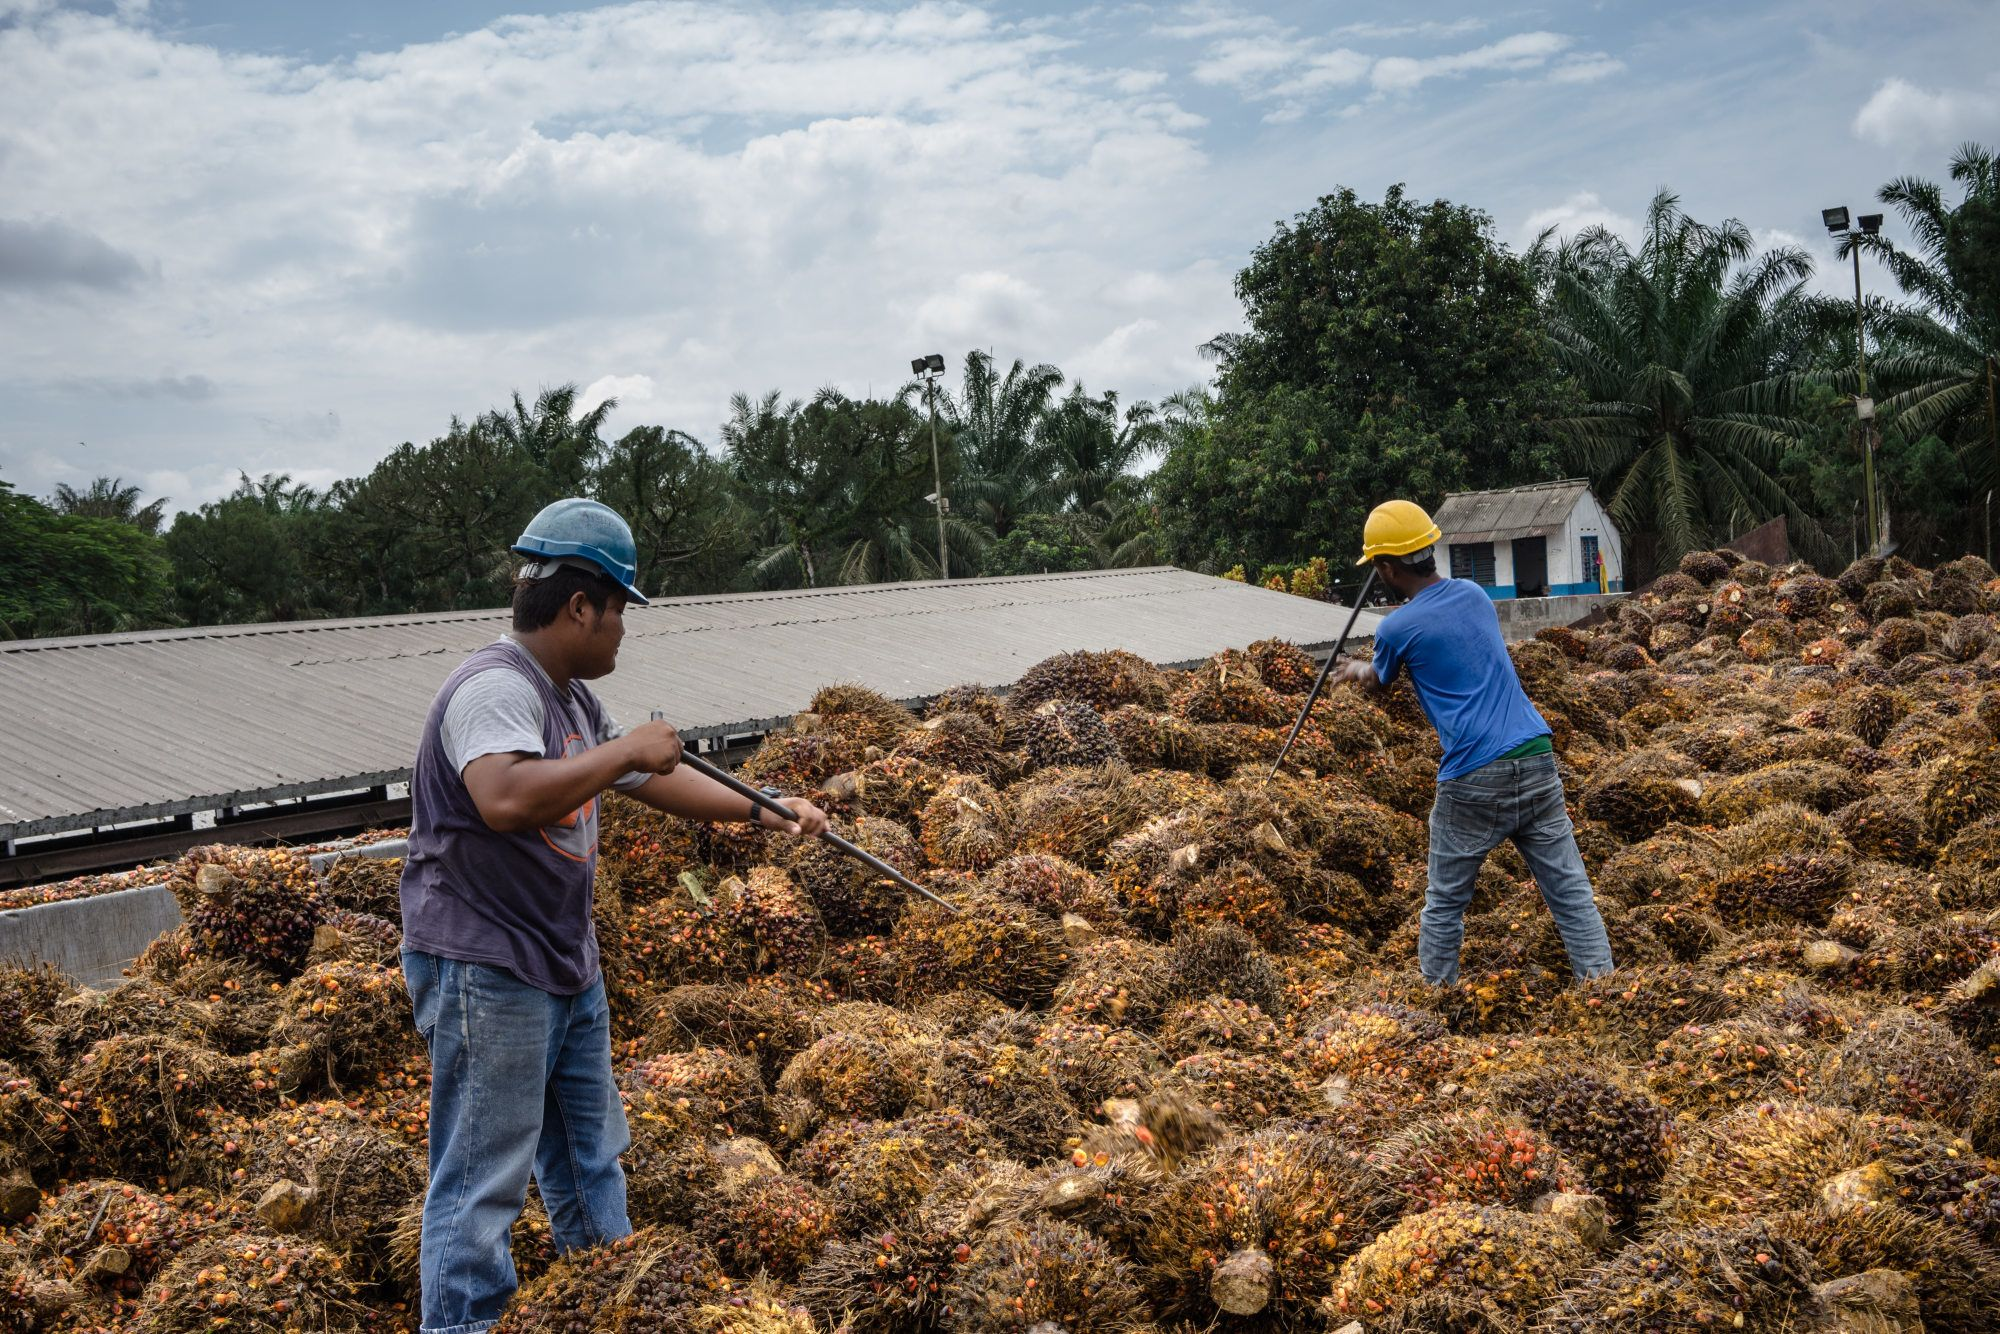 Workers sort bunches of palm fruit at a palm oil mill in Malaysia.